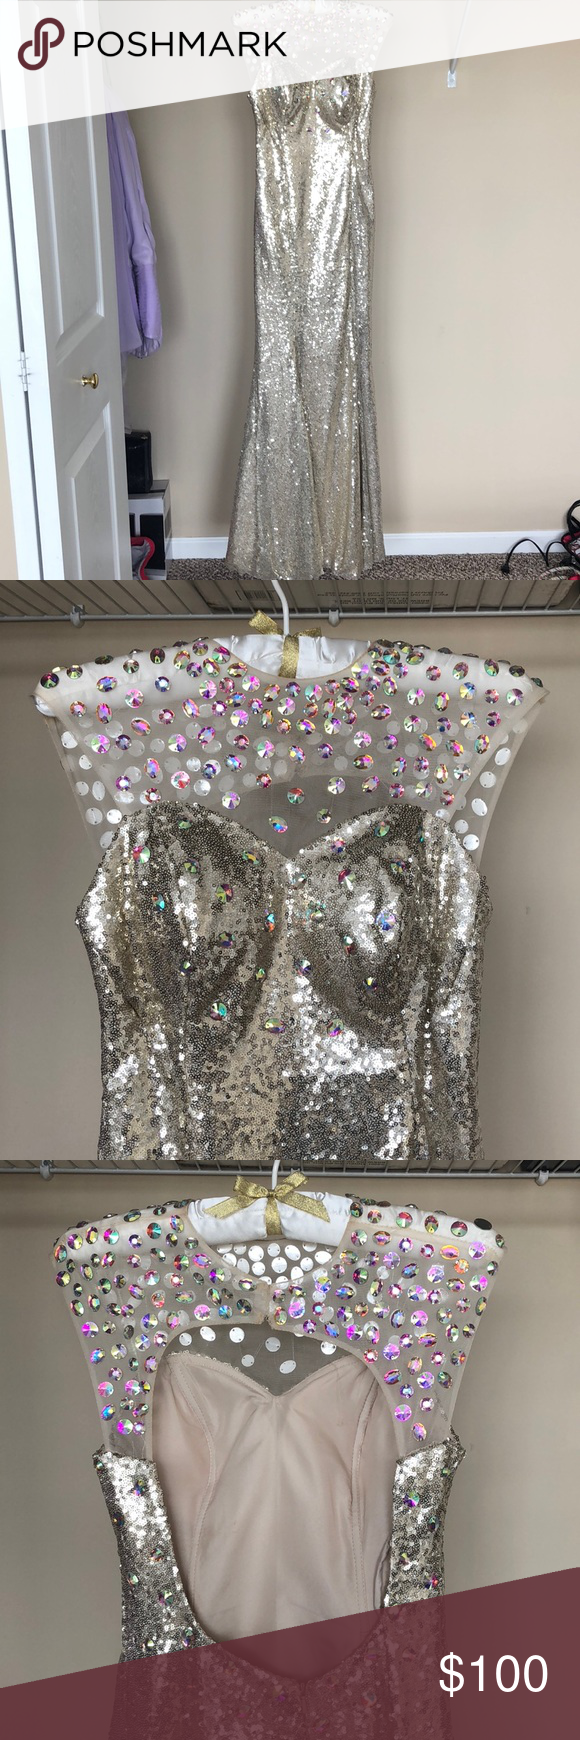 Full sequin prom dress size my posh closet pinterest dresses